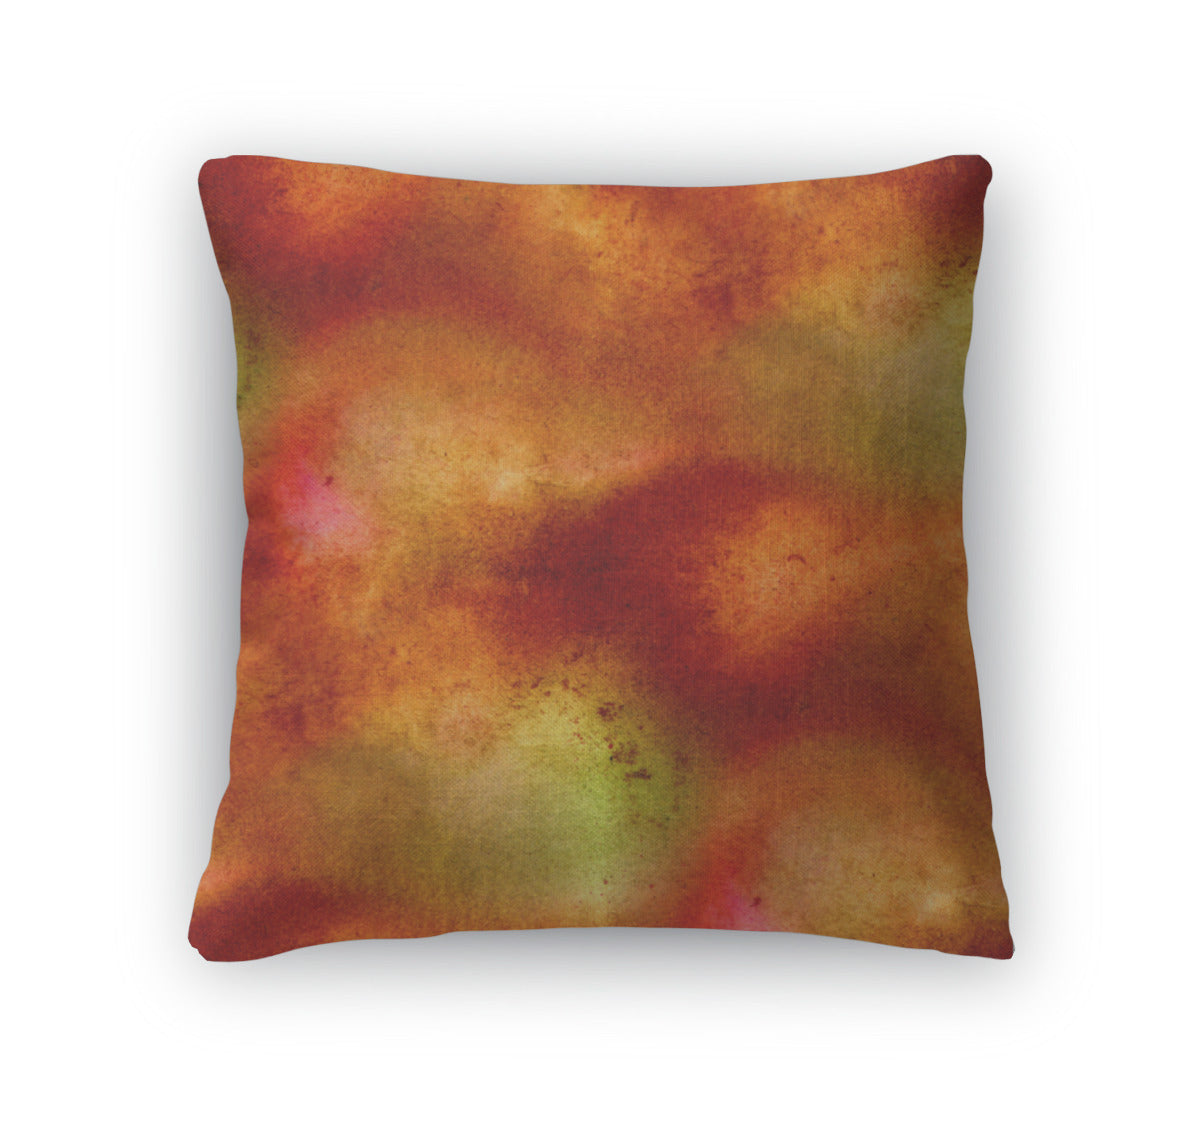 Throw Pillow, Watercolor Isolated Brown Red Orange Spot Abst - fashionbests